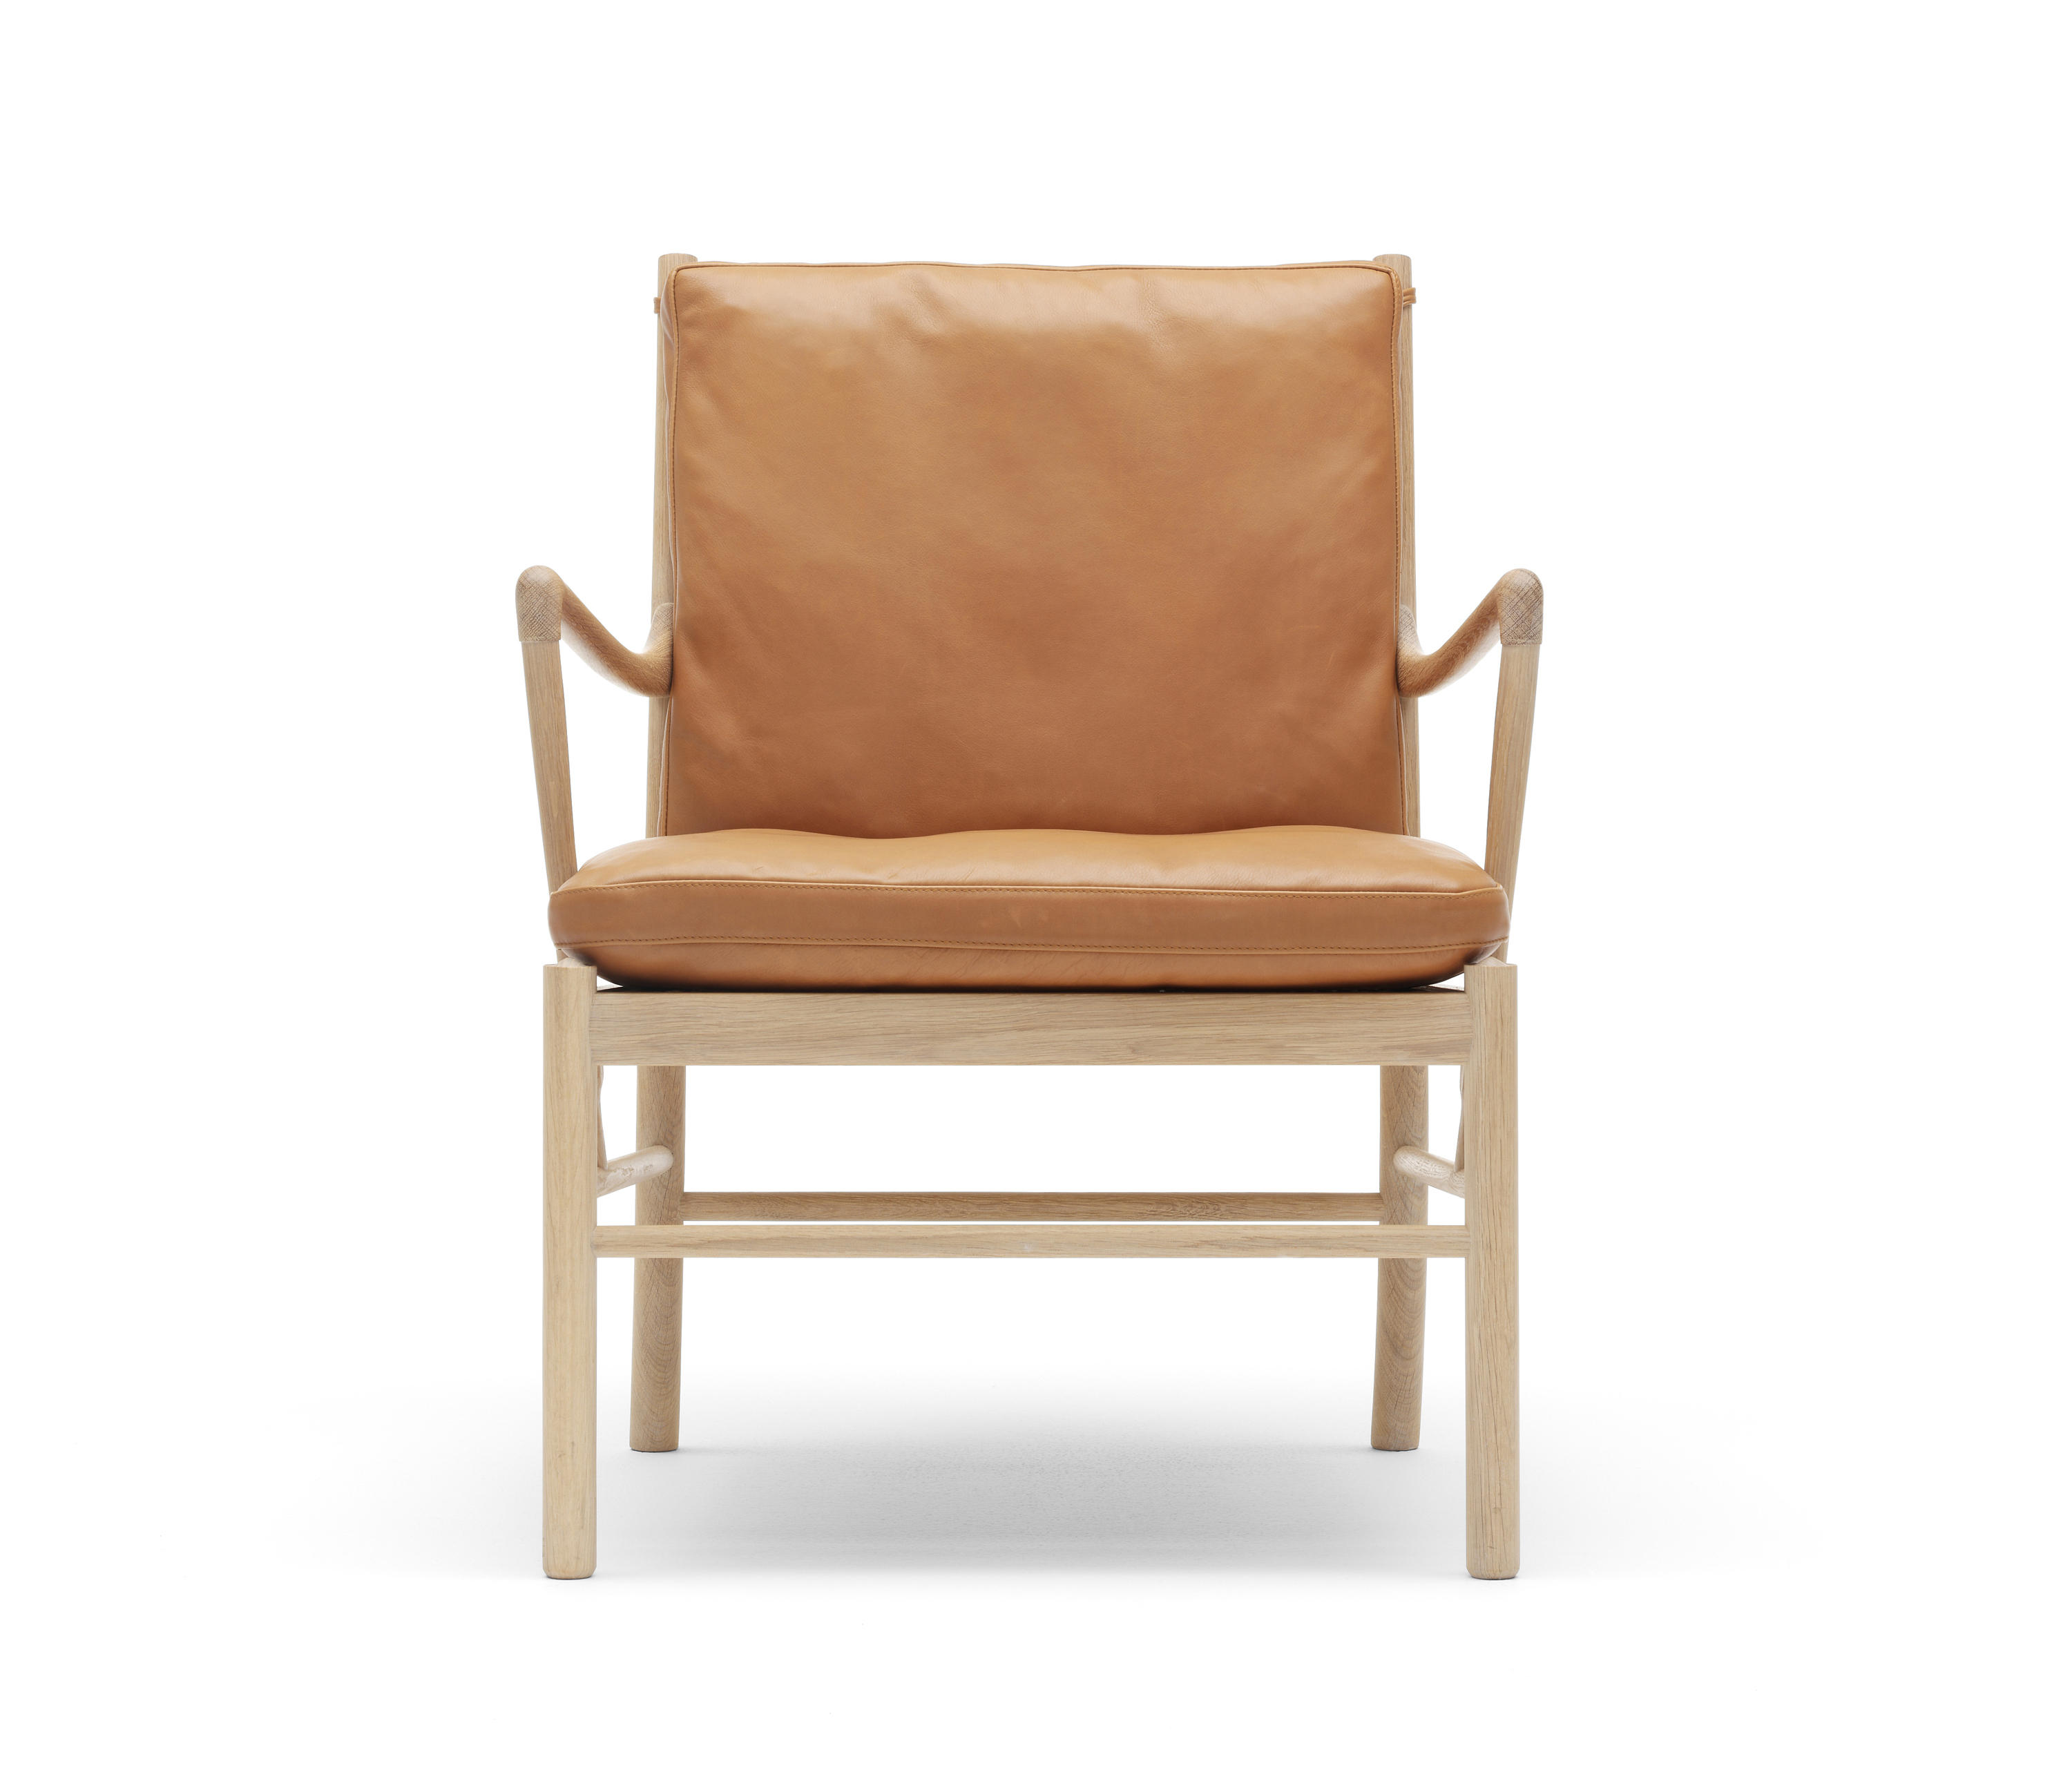 Outstanding Ow149 Colonial Chair Designer Furniture Architonic Ibusinesslaw Wood Chair Design Ideas Ibusinesslaworg